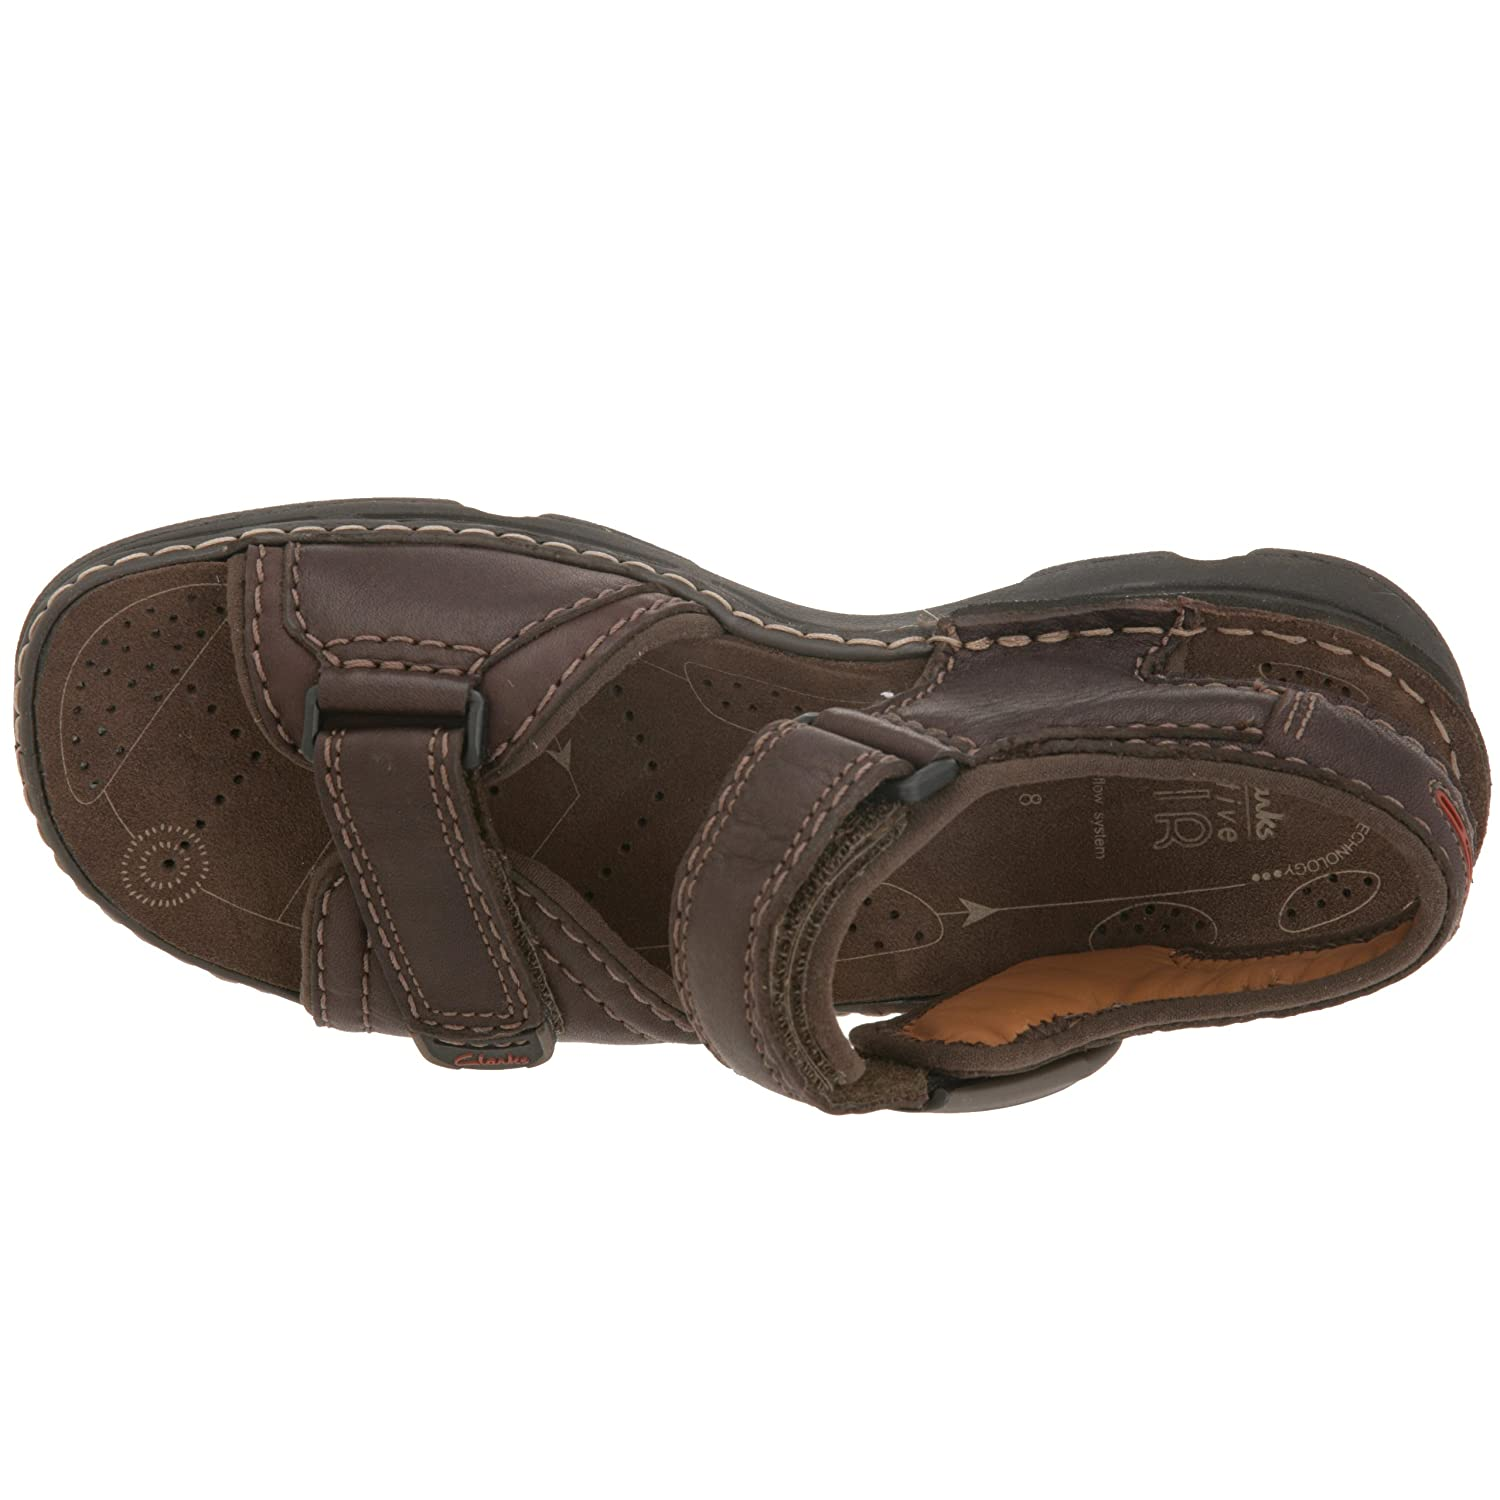 cf0d1b5def3 Clarks Men s 20339068 Open Toe Sandals Brown Size  12 UK  Amazon.co.uk   Shoes   Bags